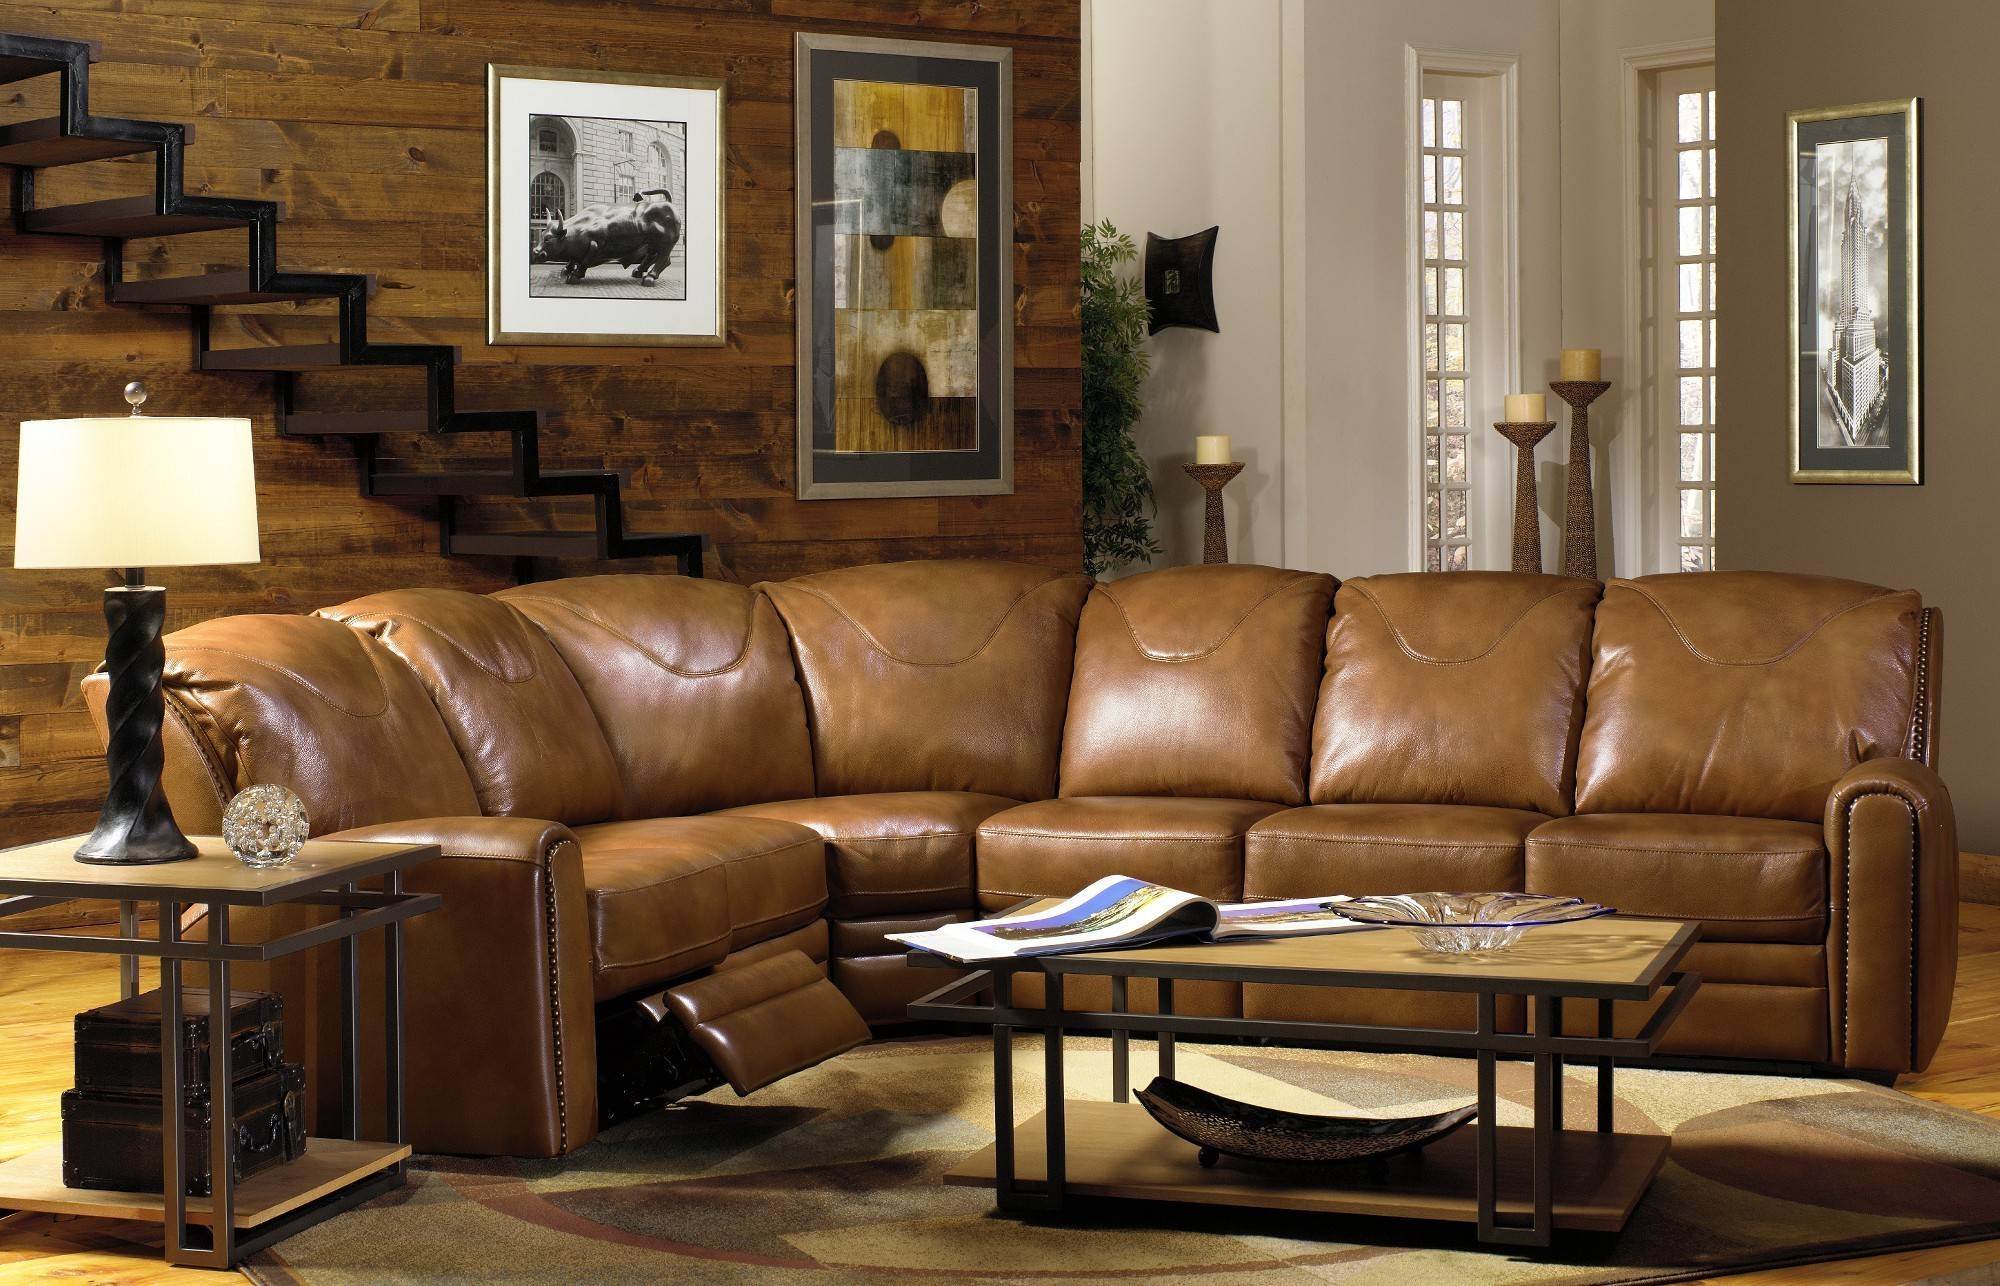 Furniture: Modern Leather Sectional Sofa With Recliners inside Traditional Leather Sectional Sofas (Image 11 of 15)